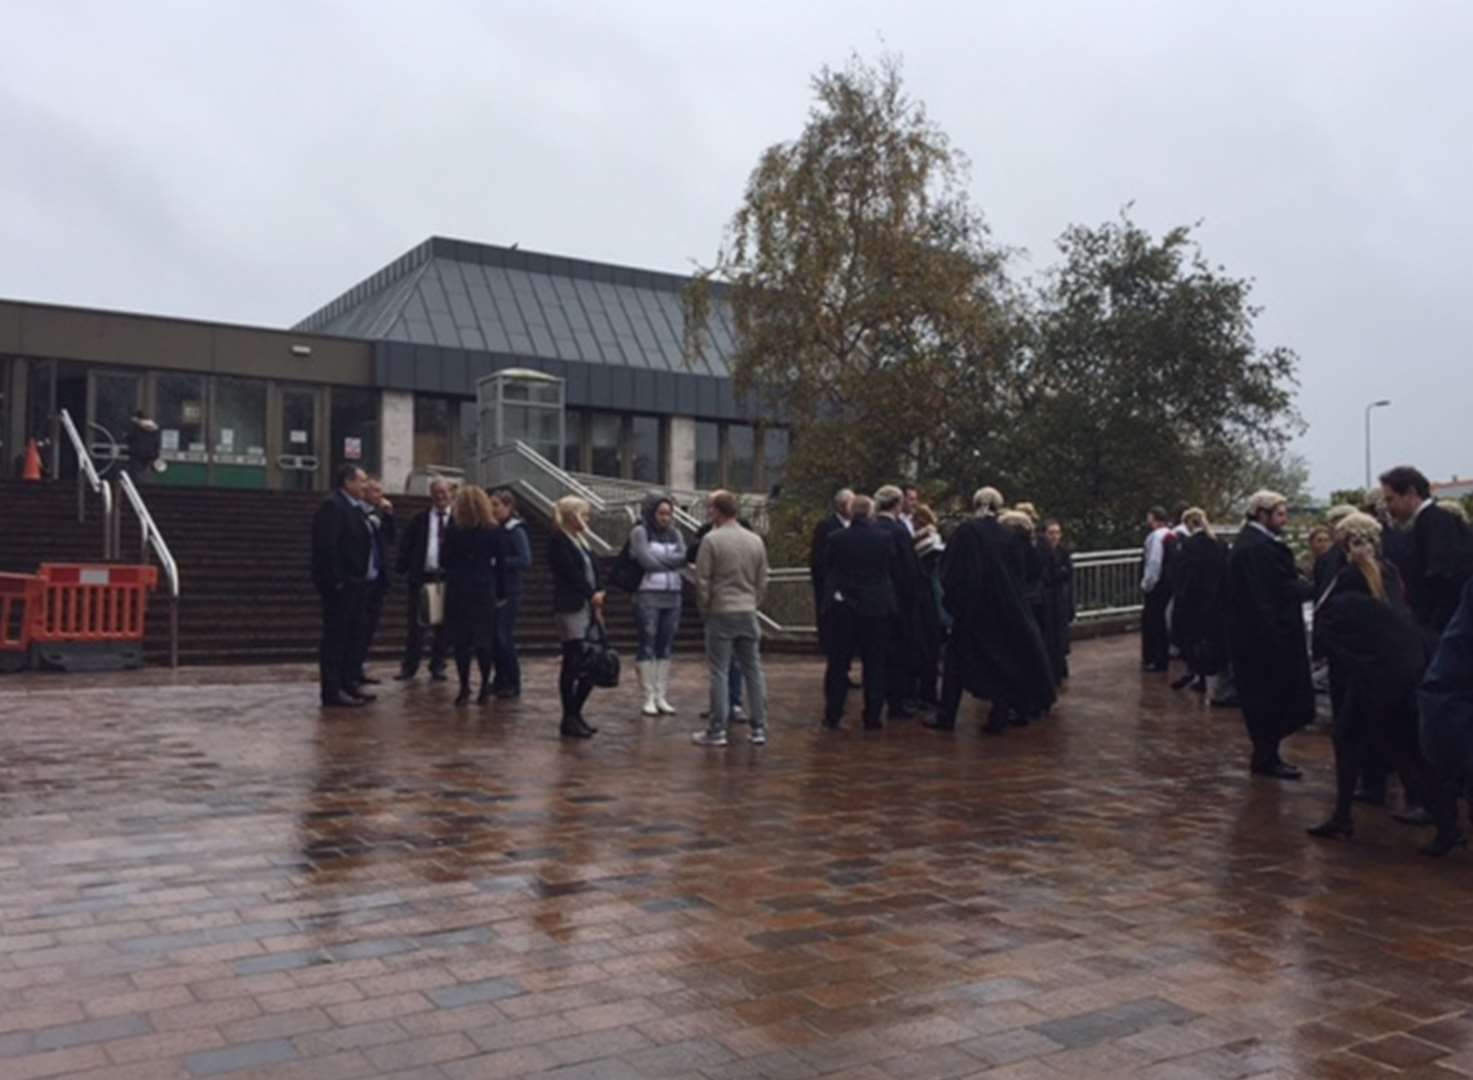 Crown Court evacuated